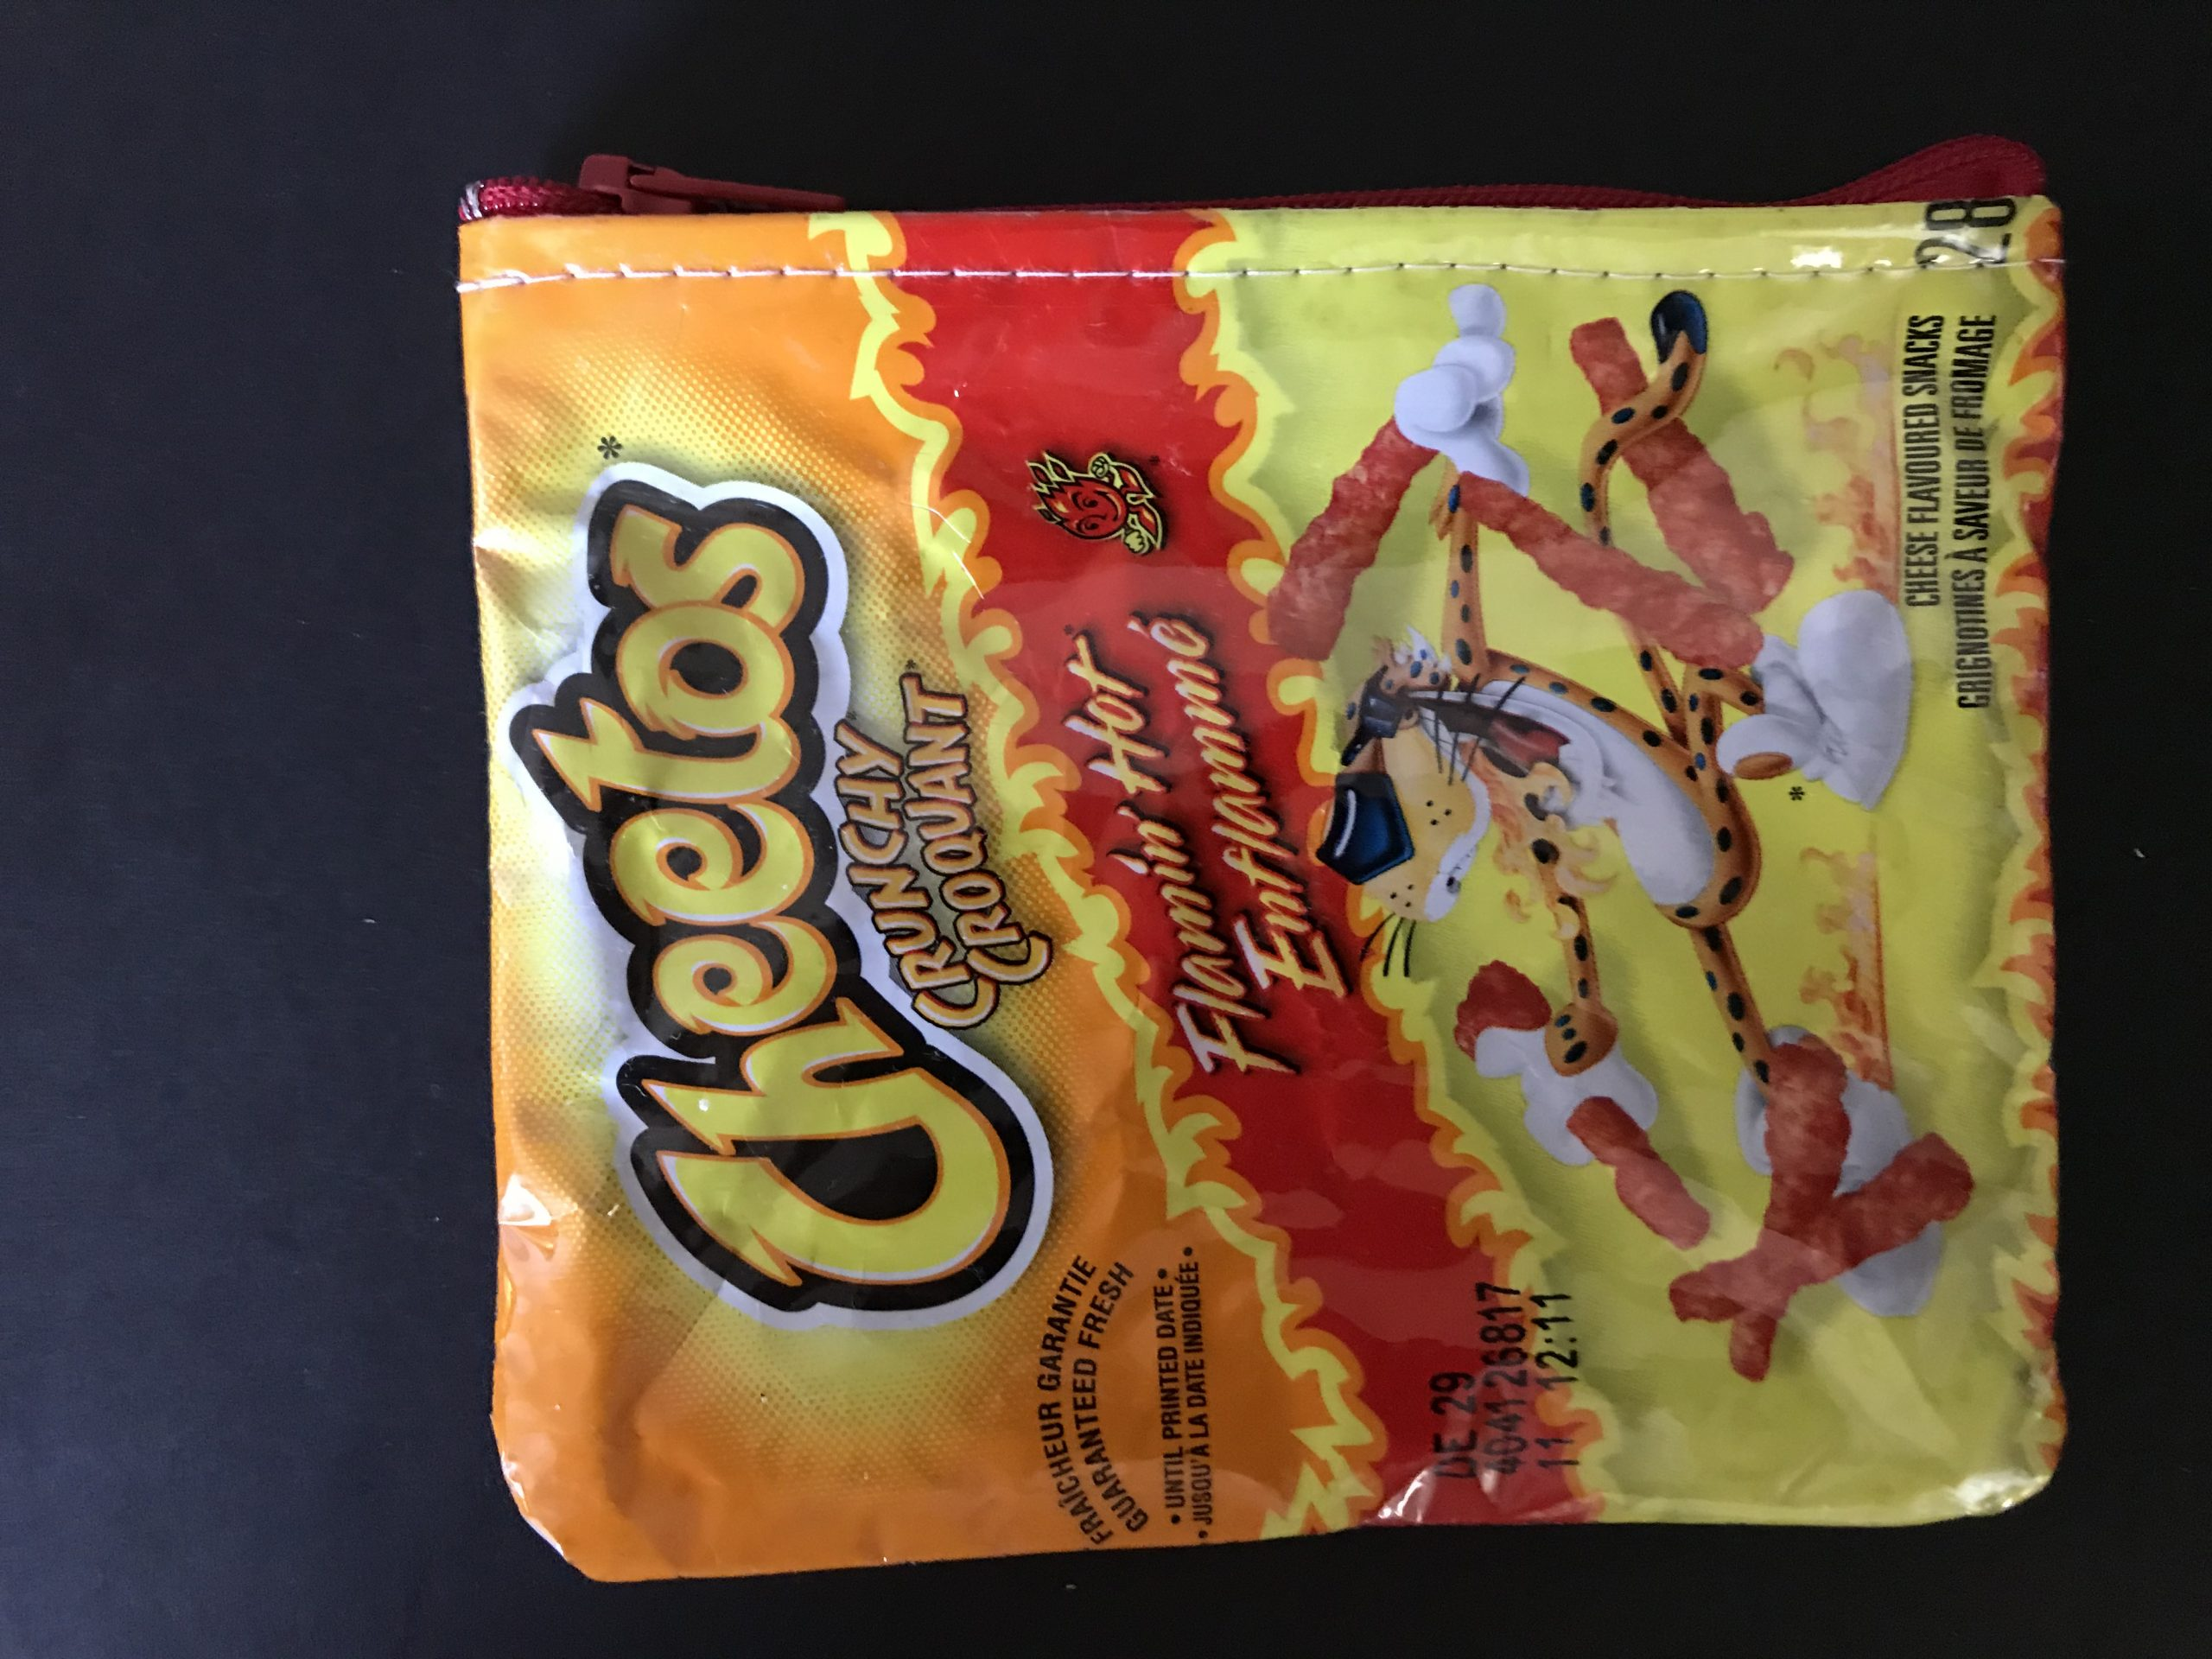 Free Shipping in Canada Upcycled Chip Bag Pouch Jalapeno Cheetos Crunchy Wallet Handmade Earbud Case